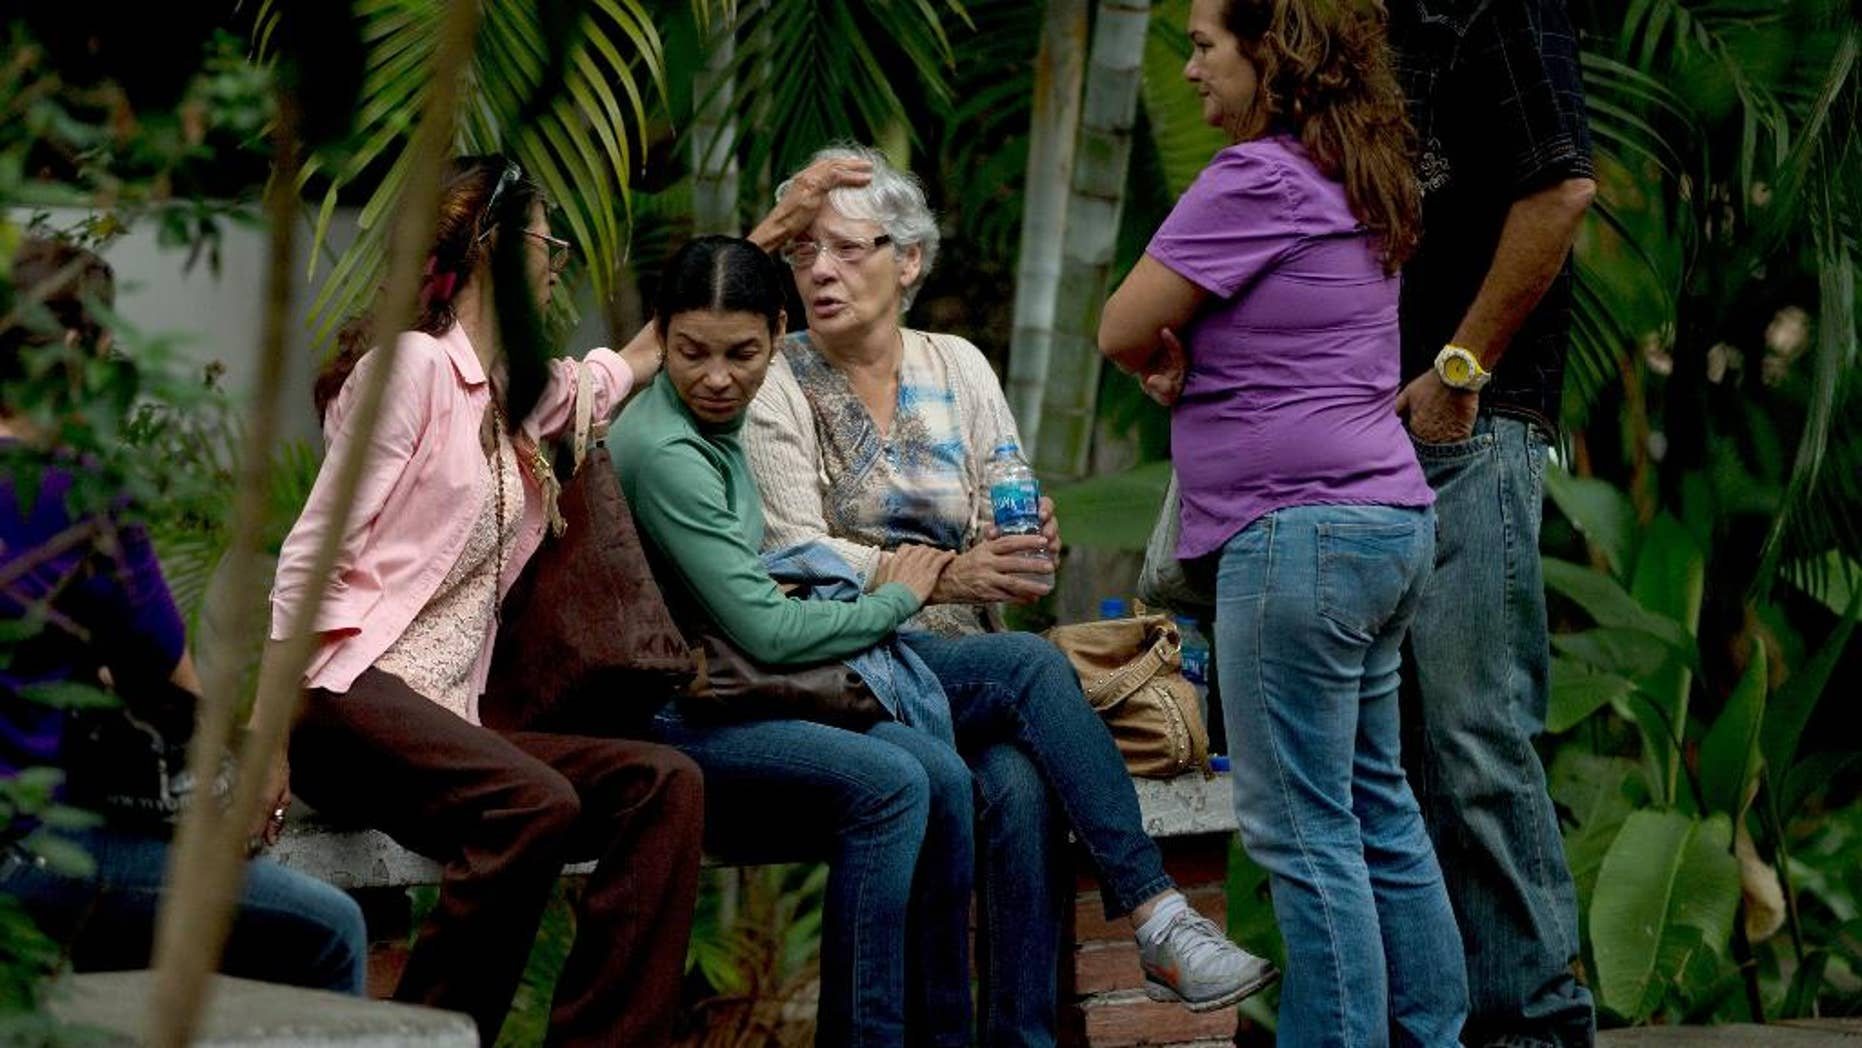 Josefa Alvarez de Gonzalez, center, is comforted by relatives of her husband, Rodolfo Gonzalez, outside the morgue office in Caracas, Venezuela, Friday, March 13, 2015. Rodolfo Gonzalez  who was arrested last year during demonstrations against the Venezuela's President Nicolas Maduro government has died in state custody. The family of Gonzalez said that he died while being held at the headquarters of Venezuela's intelligence police. The 64-year-old pilot had been jailed since April 2014 and was awaiting trial on charges related to promoting violence during the protests. (AP Photo/Fernando Llano)